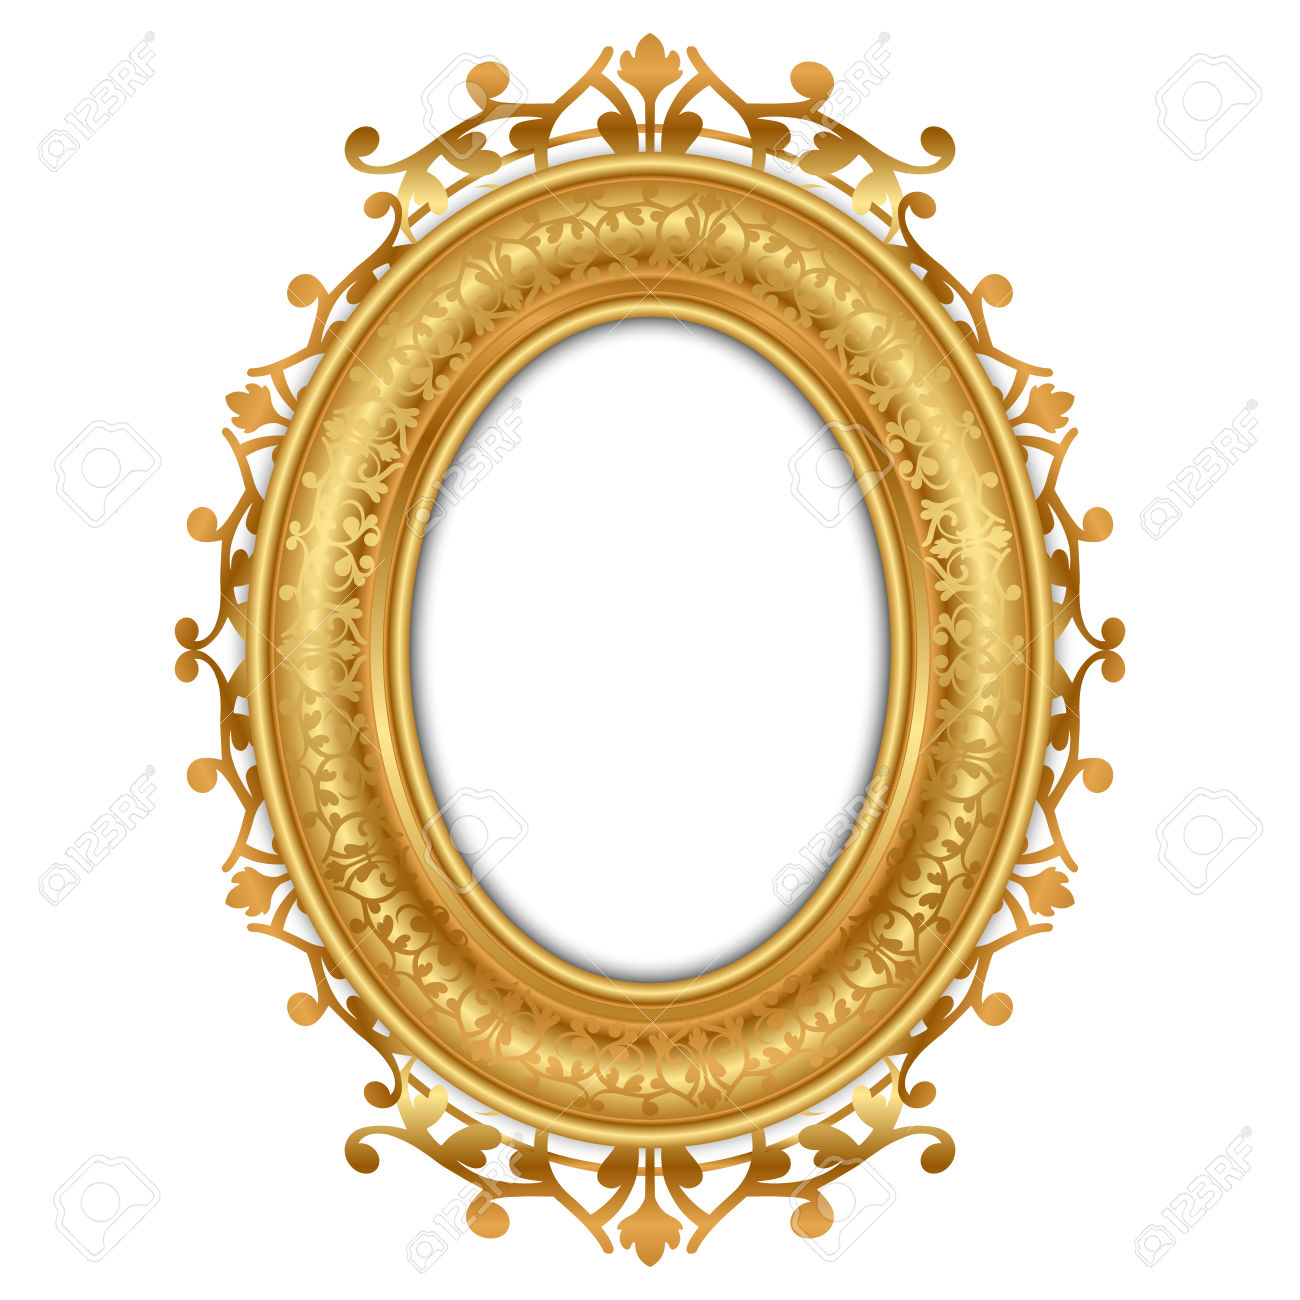 1300x1300 Gold Oval Frame Clipart Amp Gold Oval Frame Clip Art Images